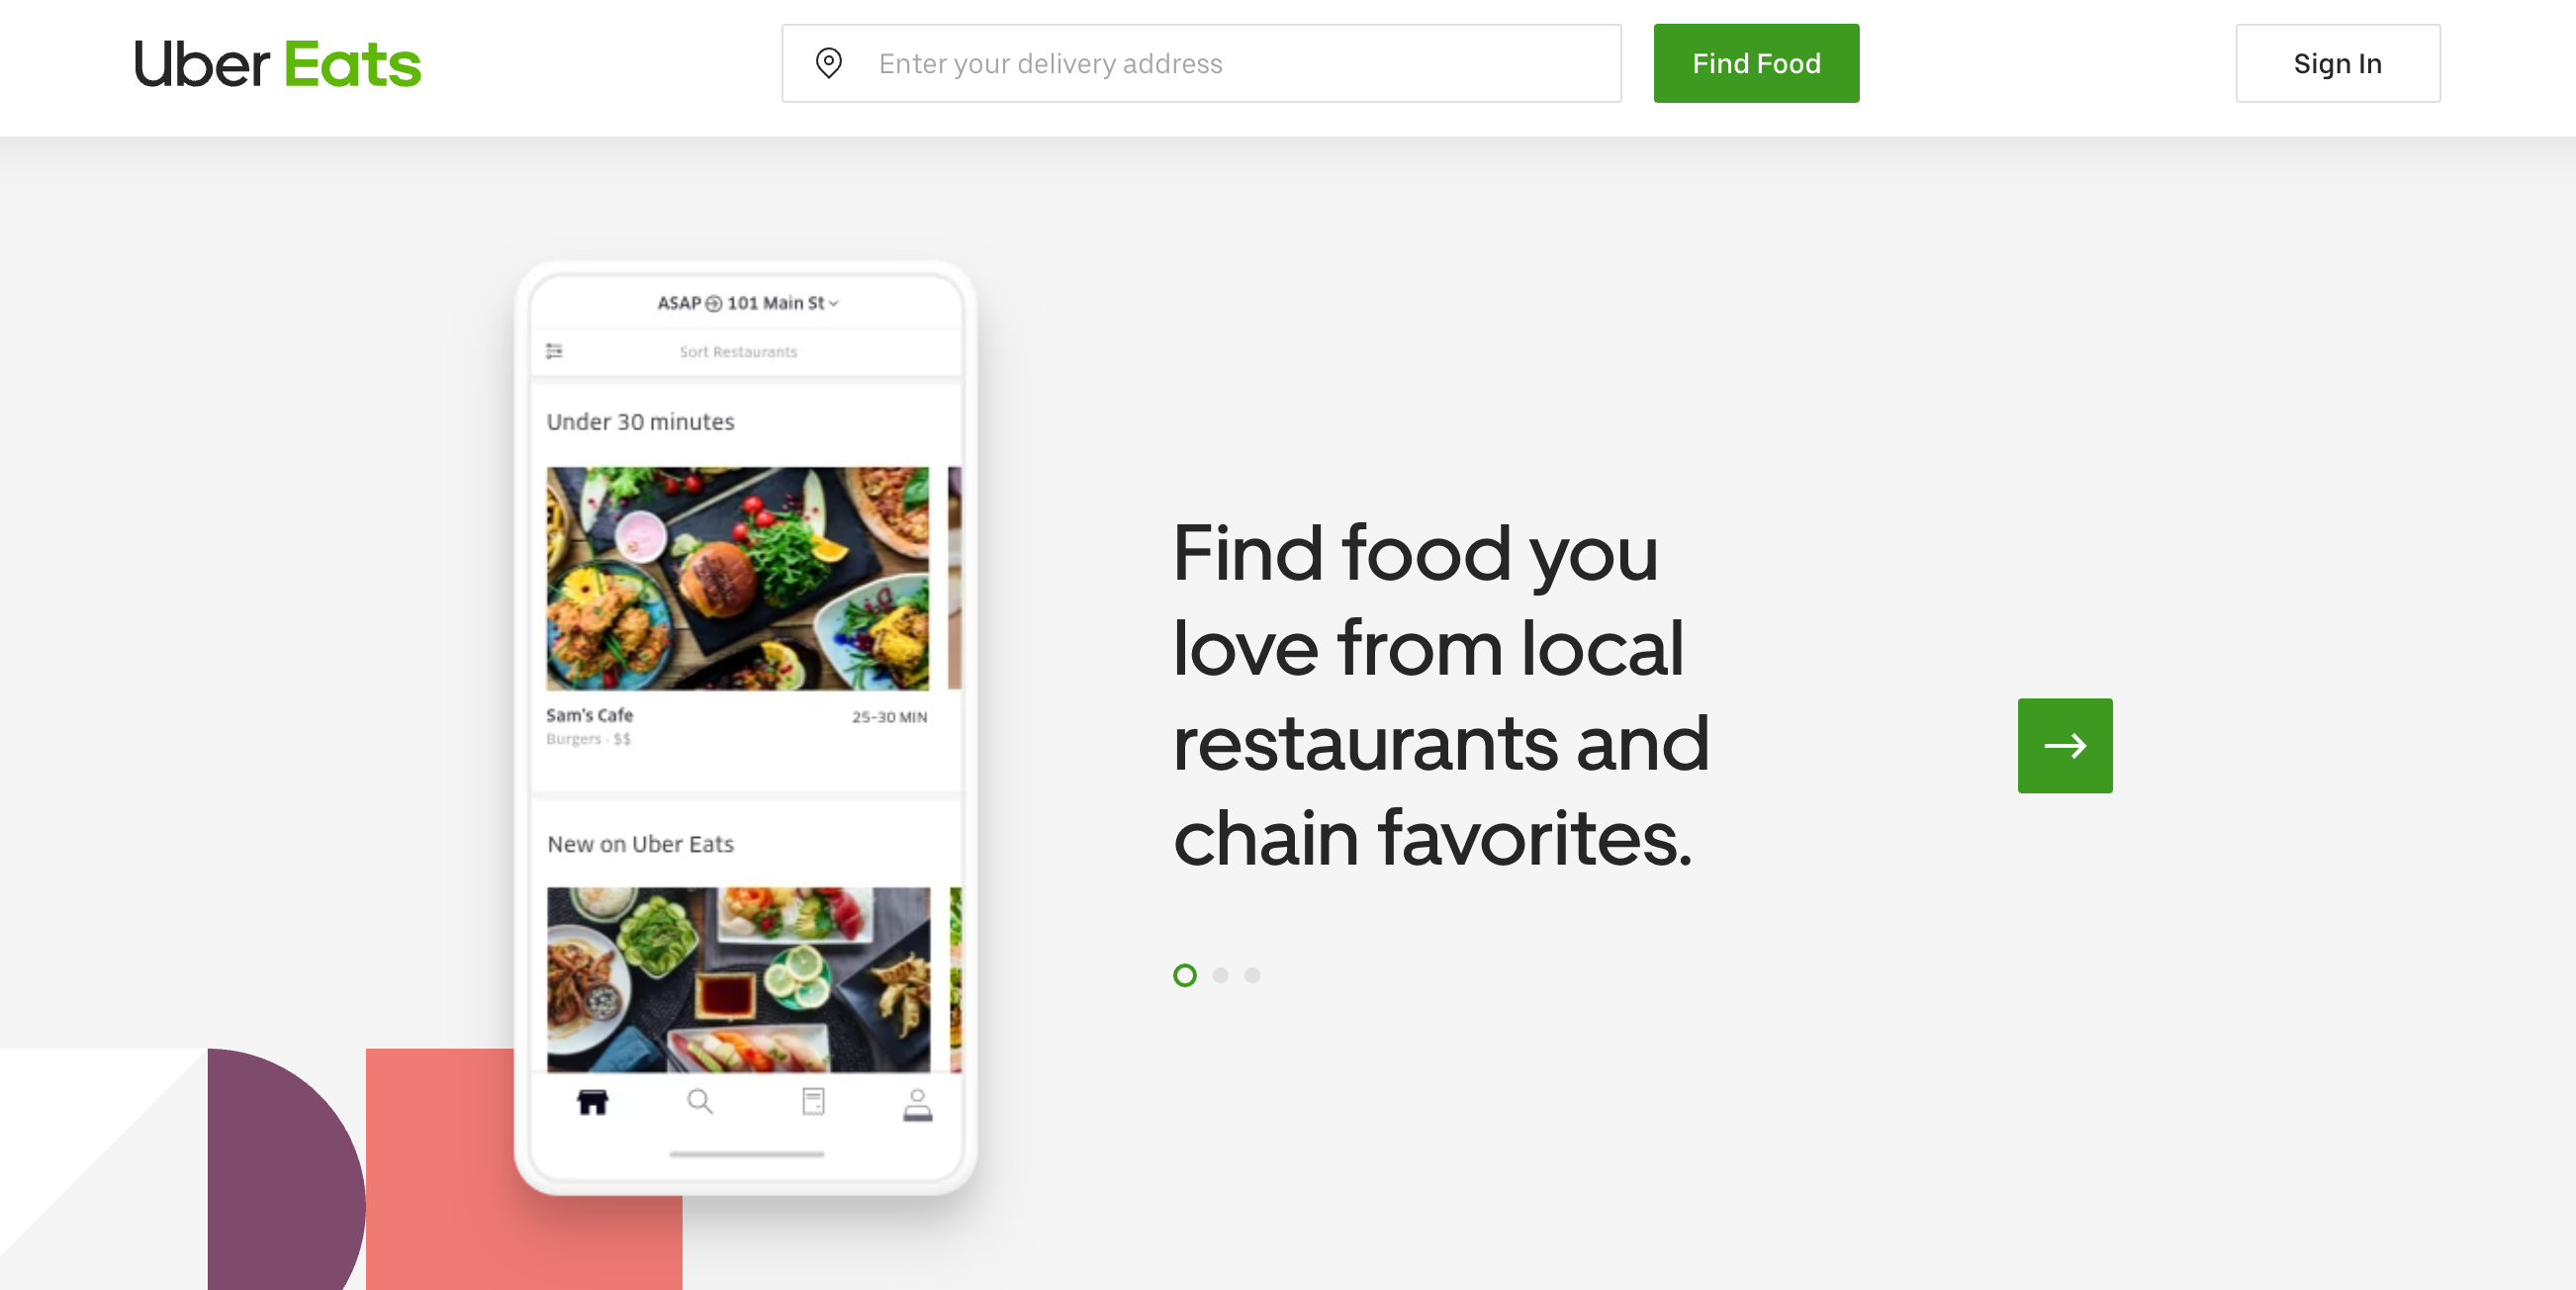 Uber Eats - $4.99 delivery fee